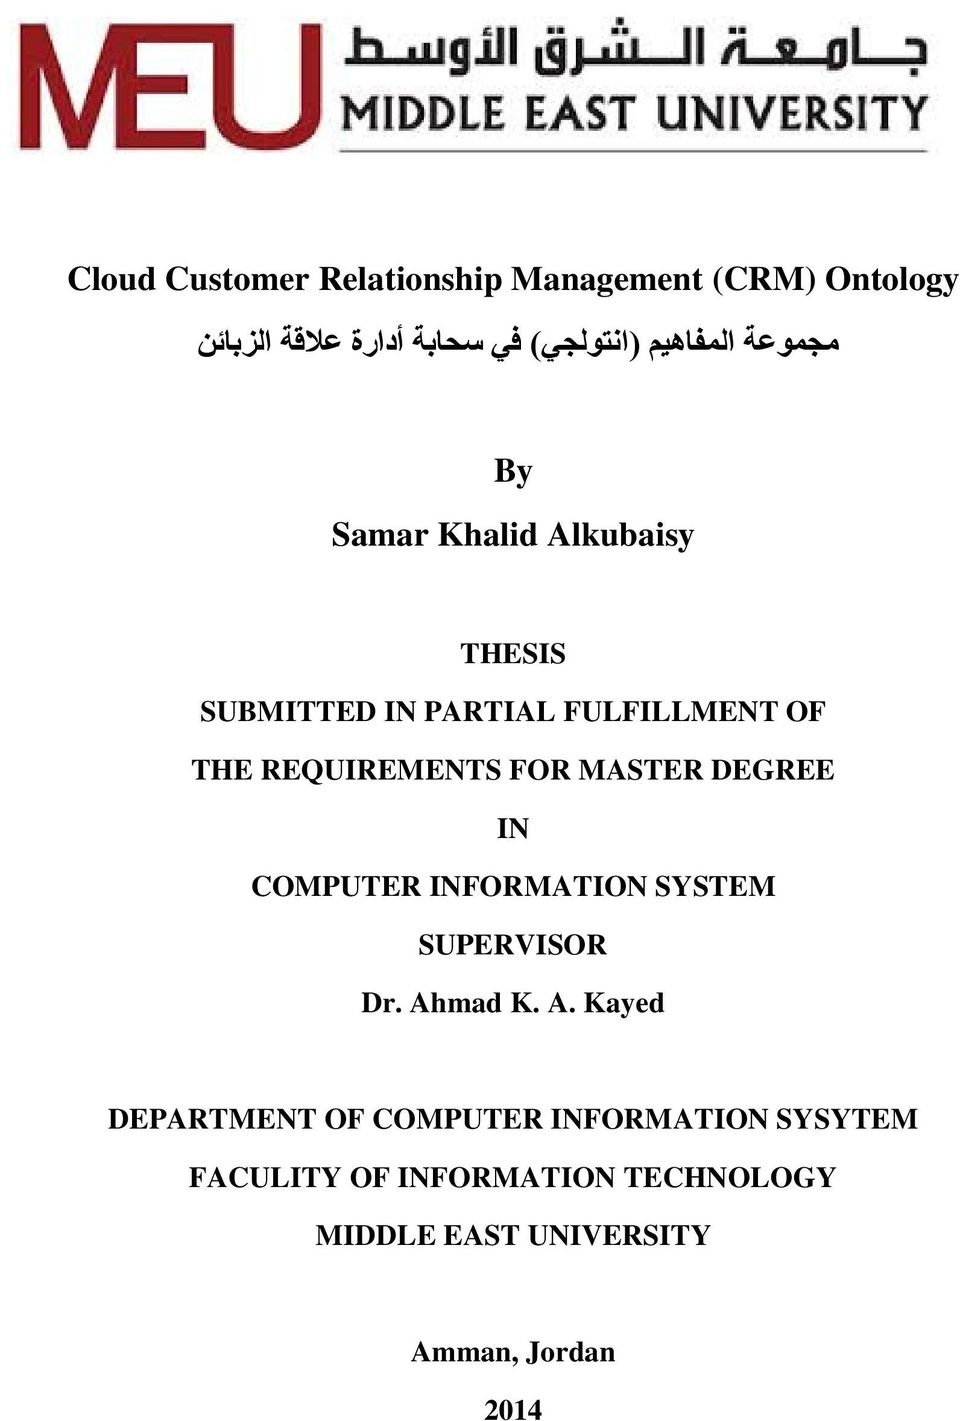 REQUIREMENTS FOR MASTER DEGREE IN COMPUTER INFORMATION SYSTEM SUPERVISOR Dr. Ah